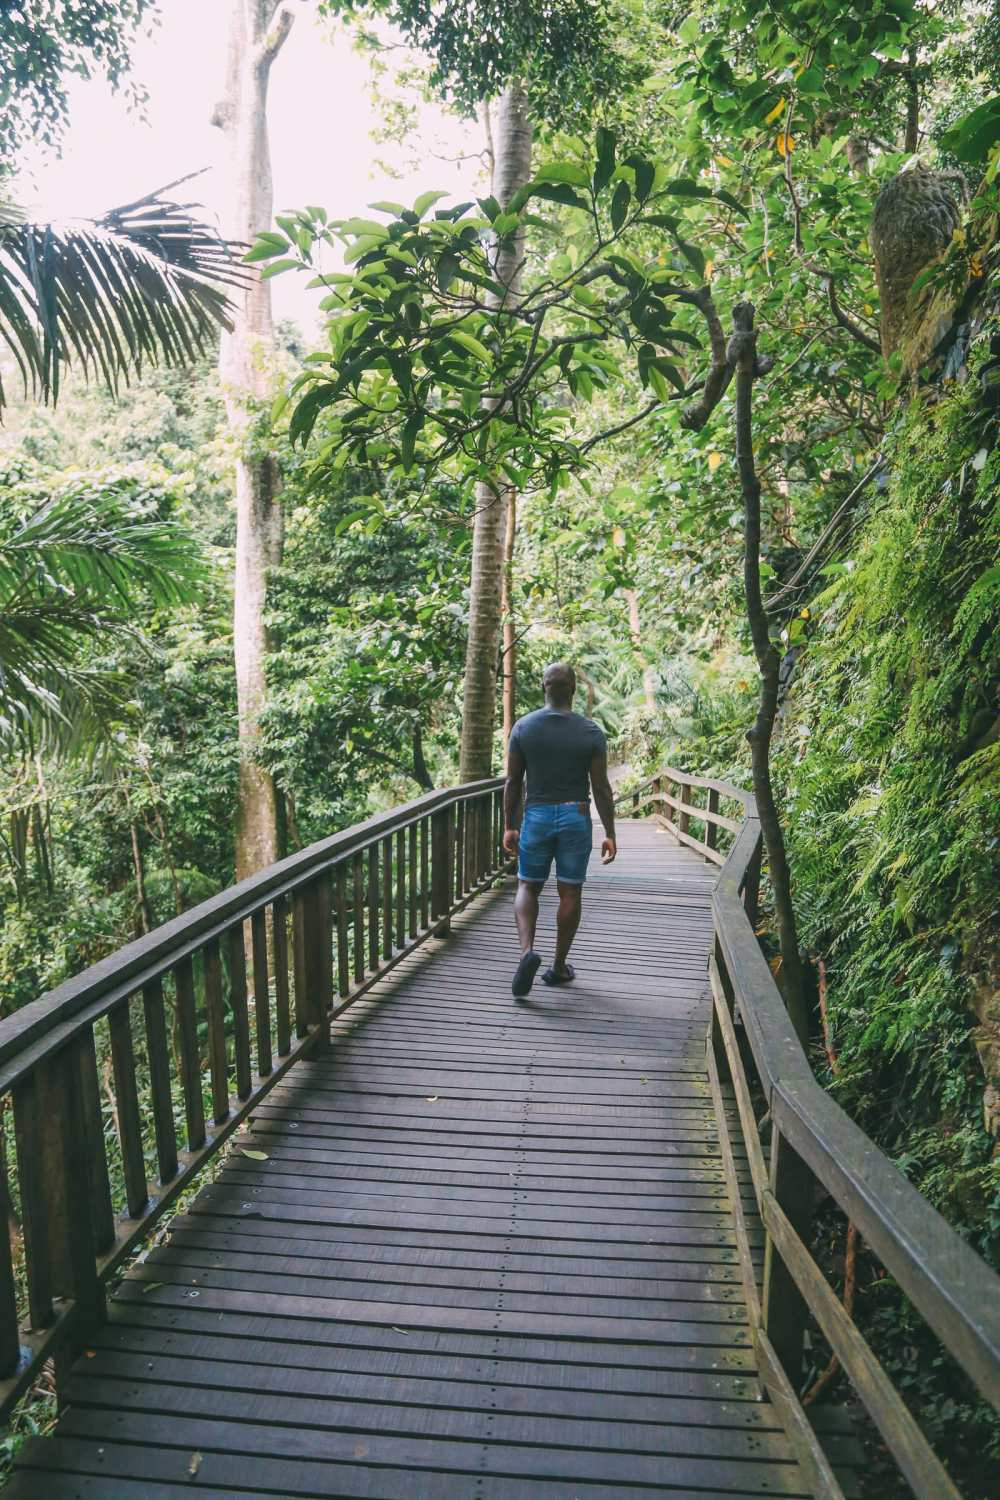 Ubud Monkey Forest In Bali - Things To Know Before You Visit (17)